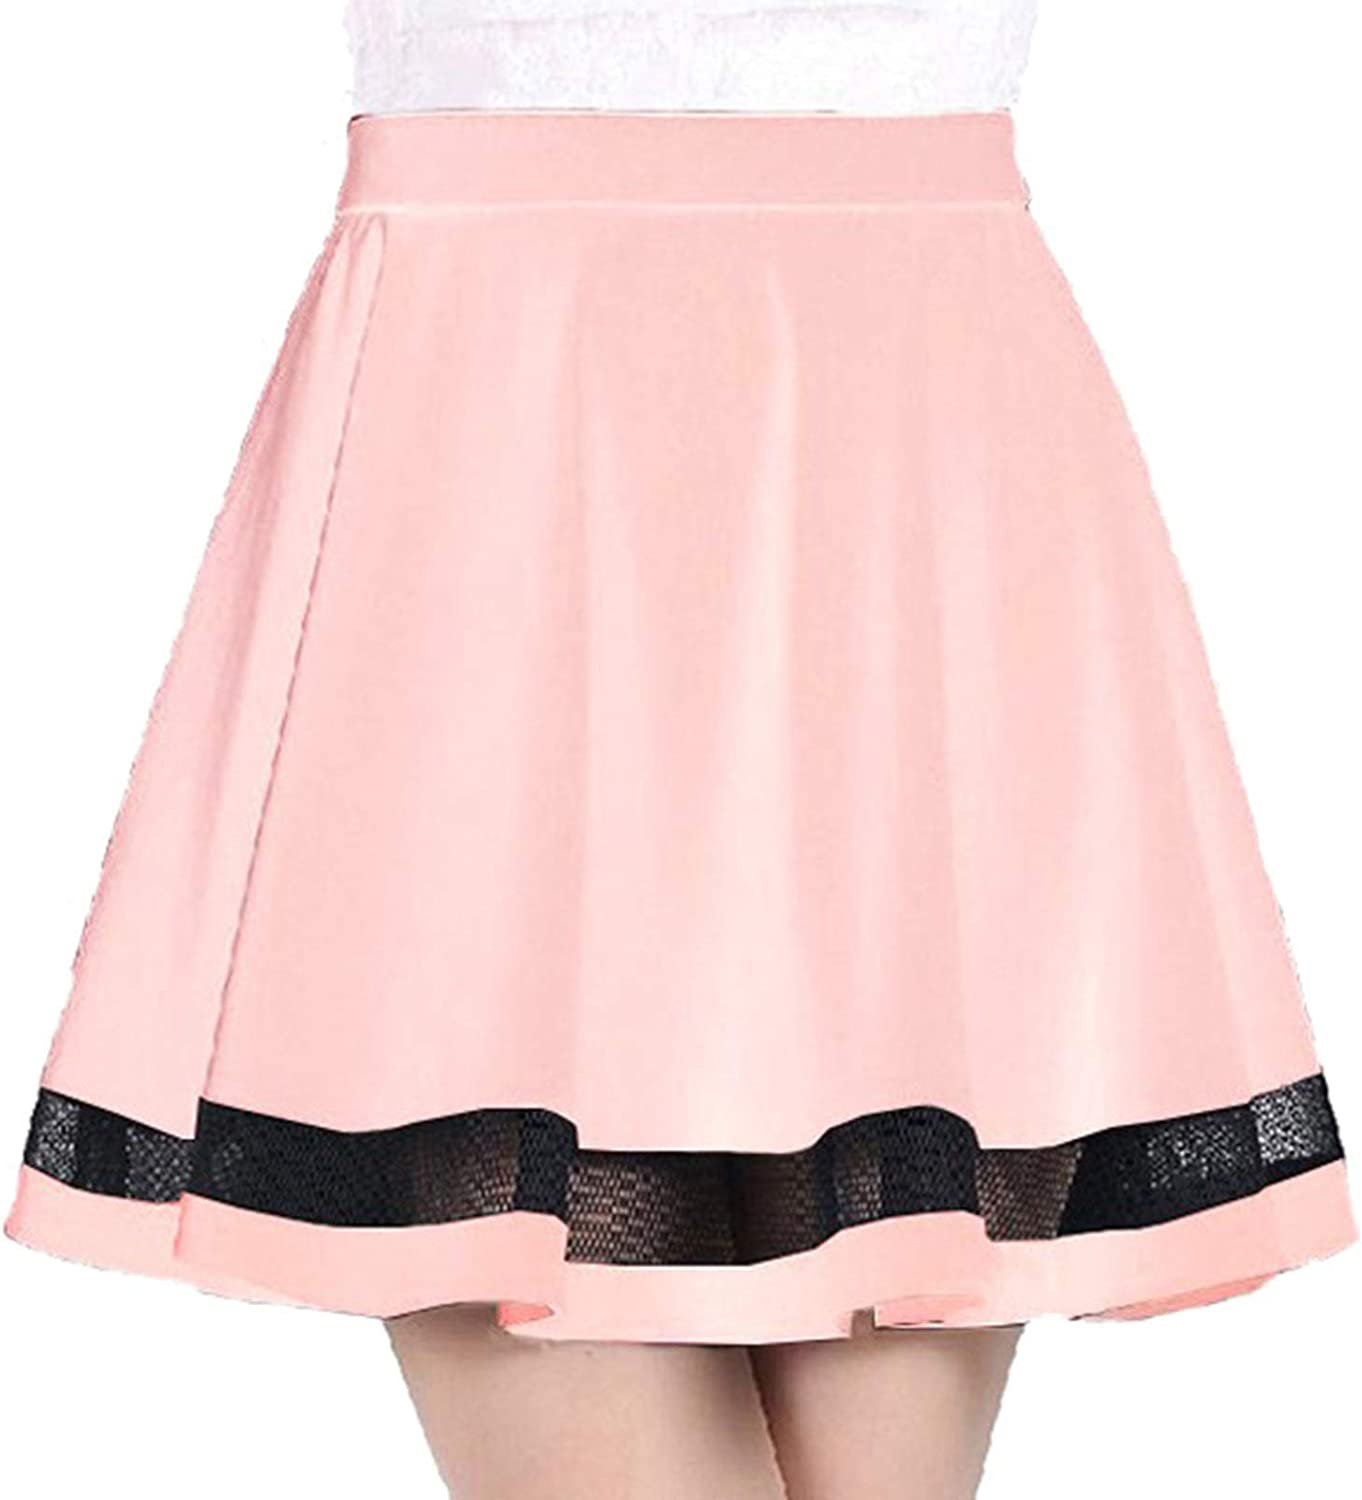 CHICTRY Women's Basic Elastic High Waisted Stretchy Flared Casual Mini Striped Skater Skirt